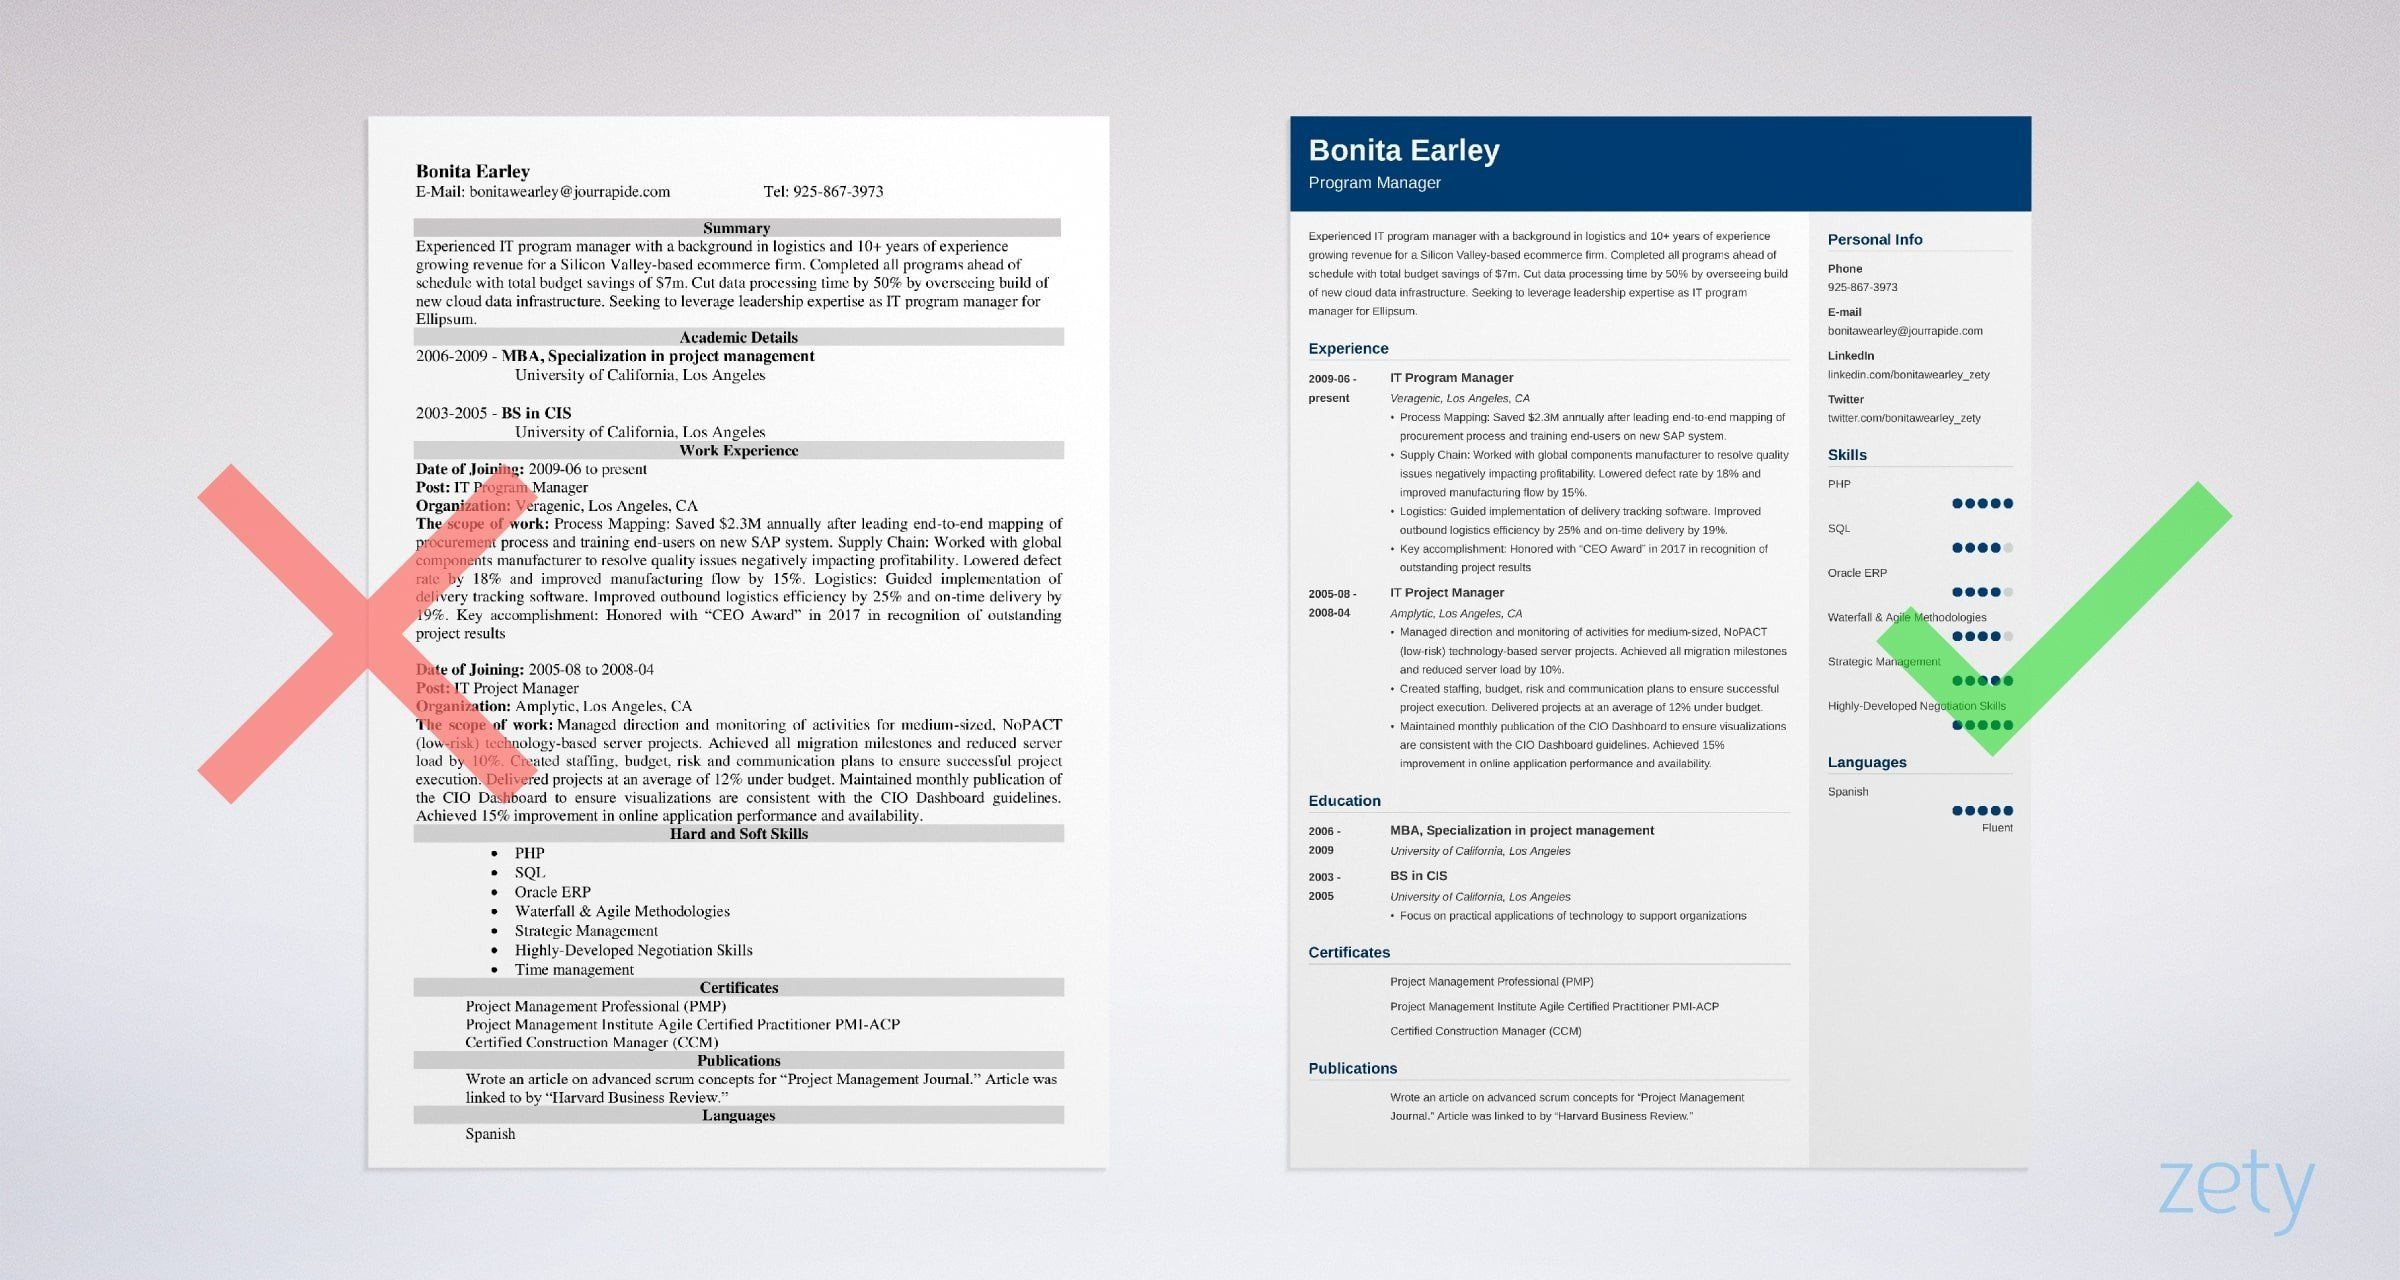 Program Manager Resume Sample 12 Tips Amp Templates Expect To Receive Fun Light Hearted Sho In 2020 Teacher Resume Examples Medical Coder Resume Resume Examples